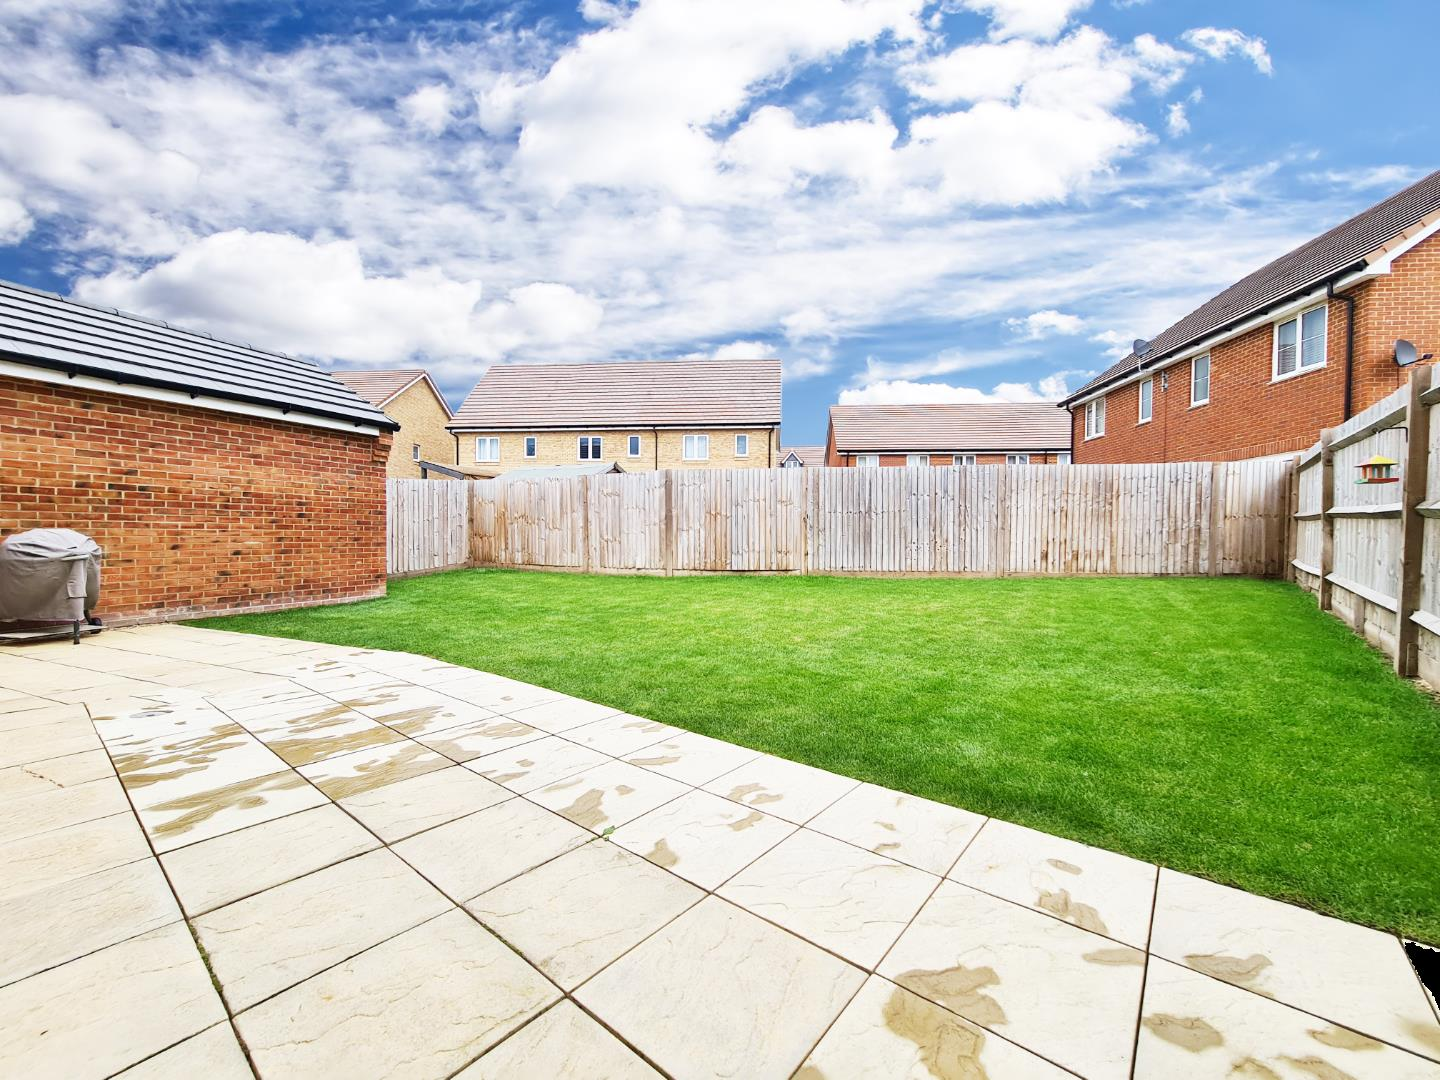 3 bed town house to rent in Shinfield 12